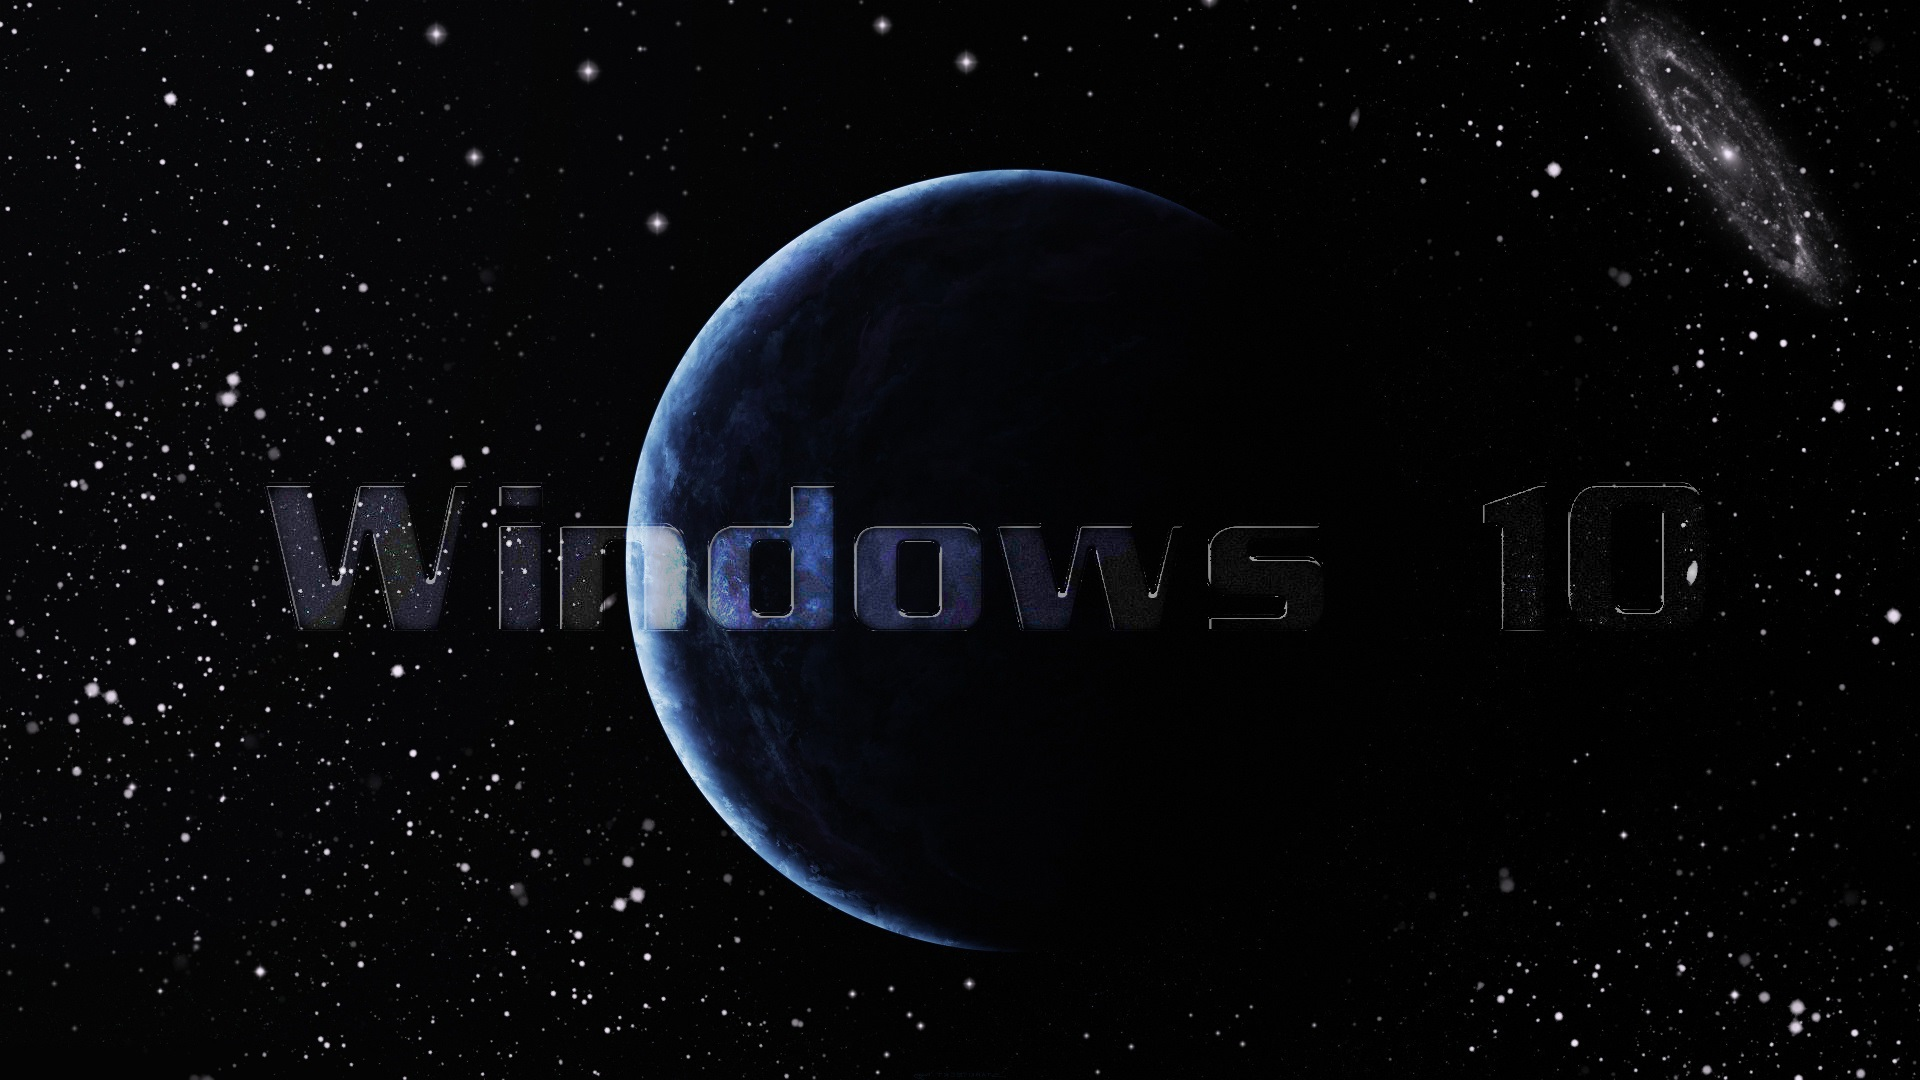 Universe Windows 10 wallpapers and images   wallpapers pictures 1920x1080